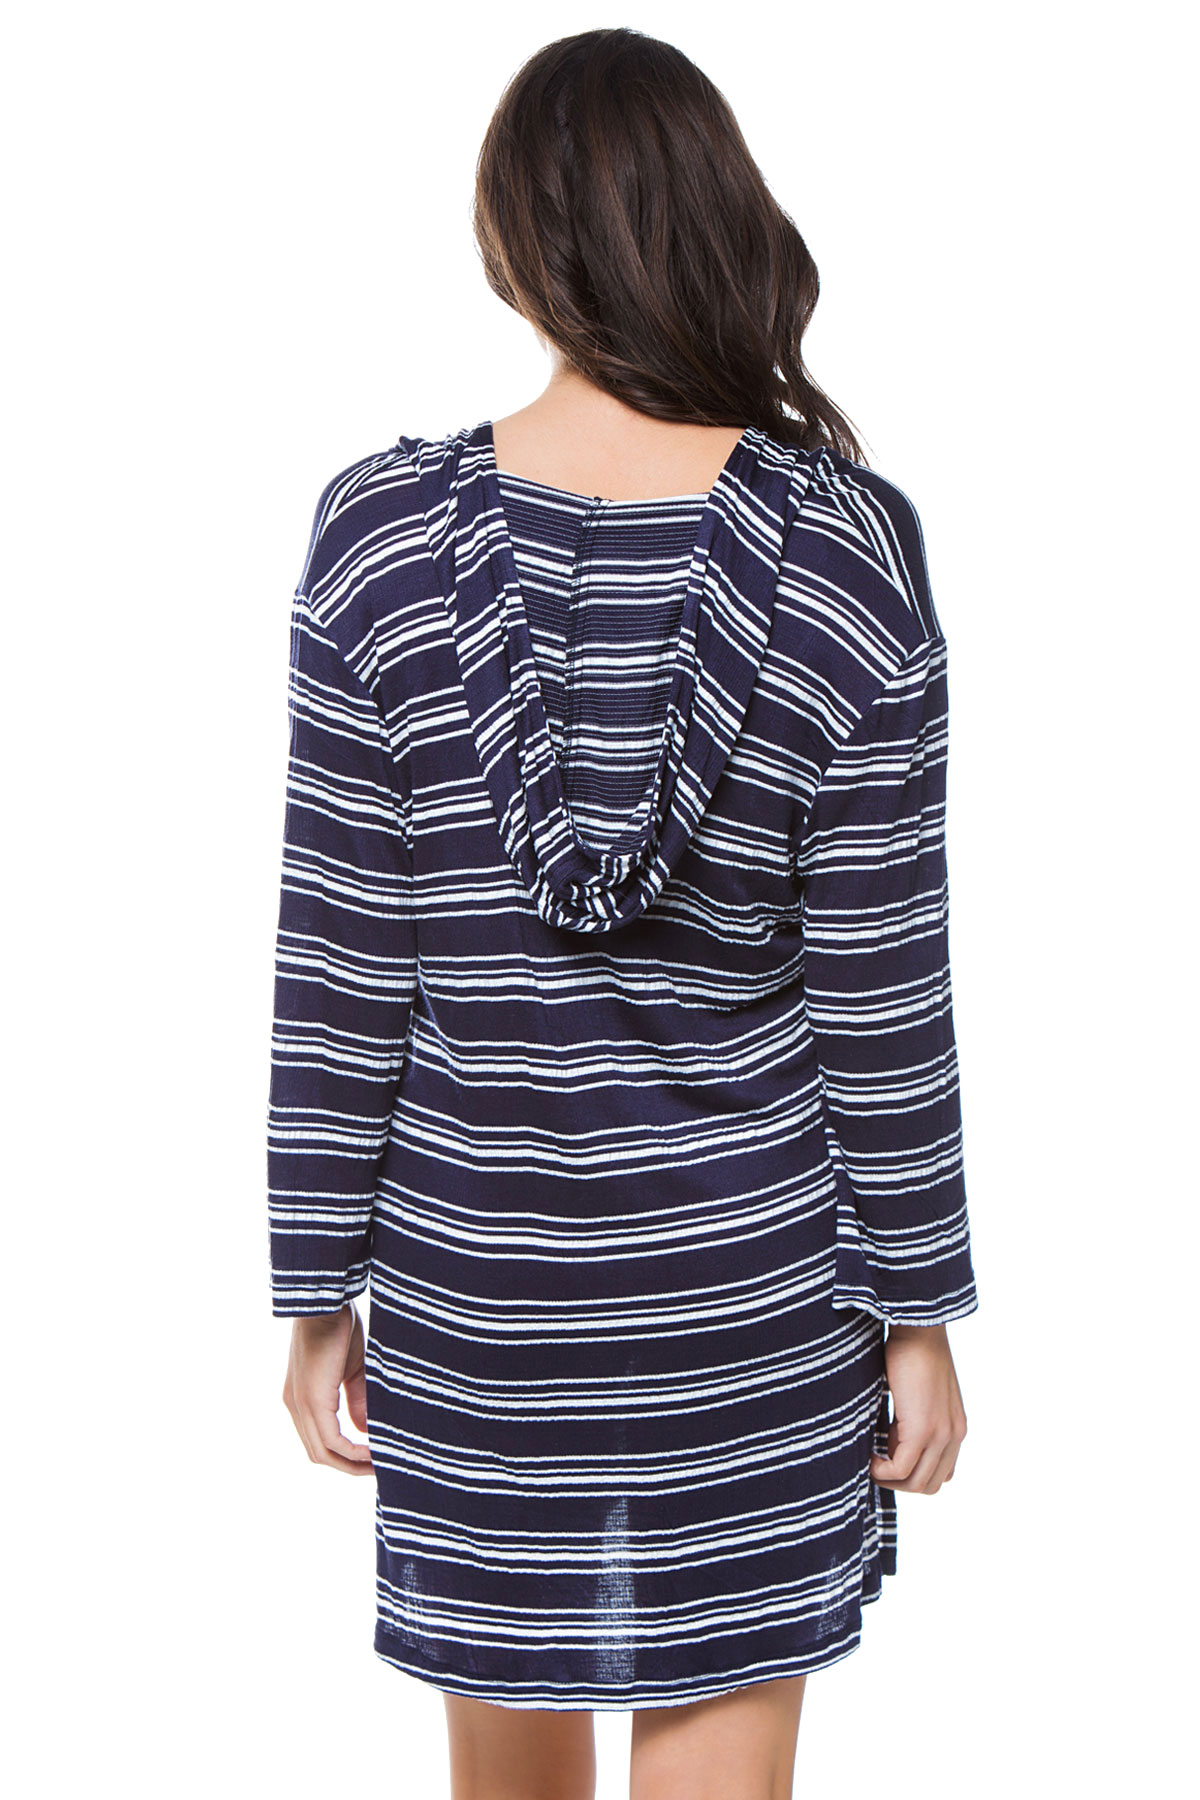 Lace-Up V-Neck Hoodie - Navy 2